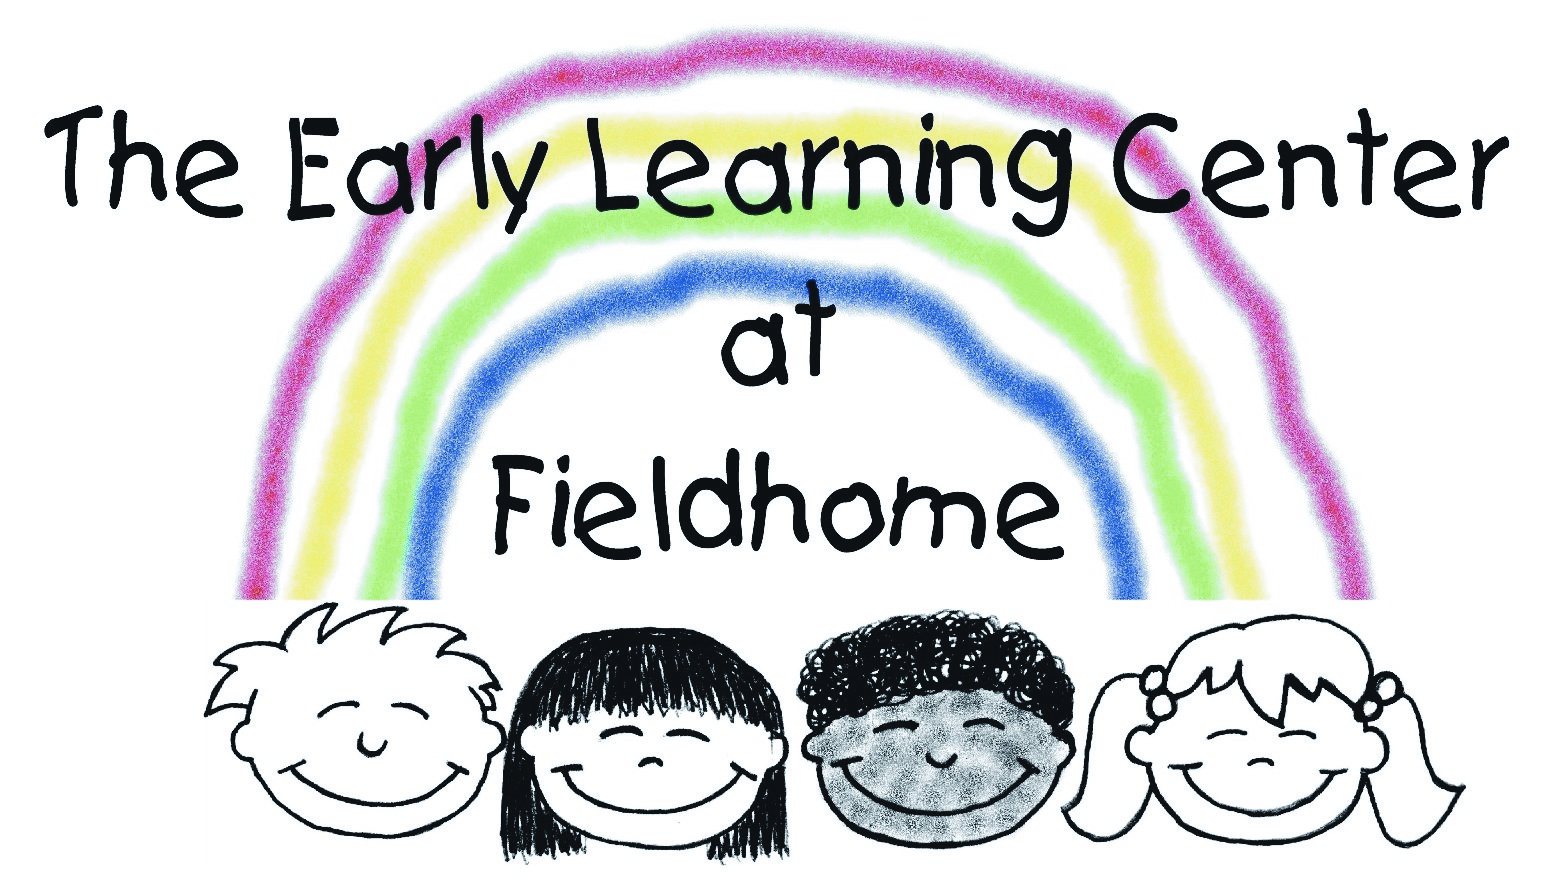 The Early Learning Center at Fieldhome